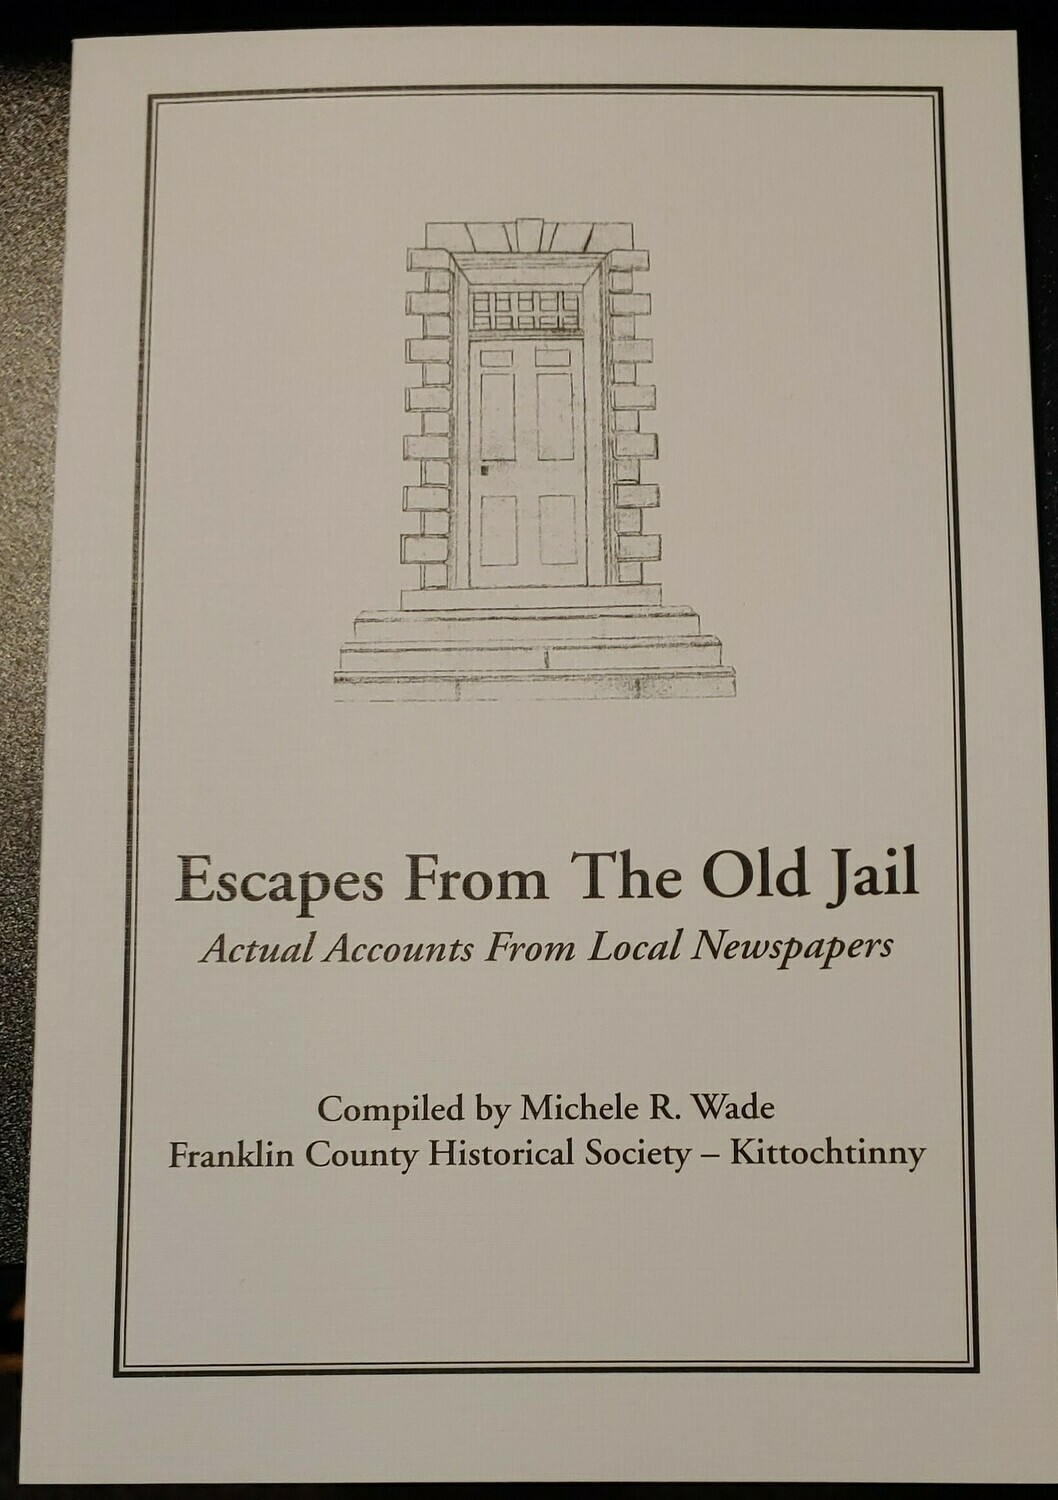 Escapes From The Old Jail